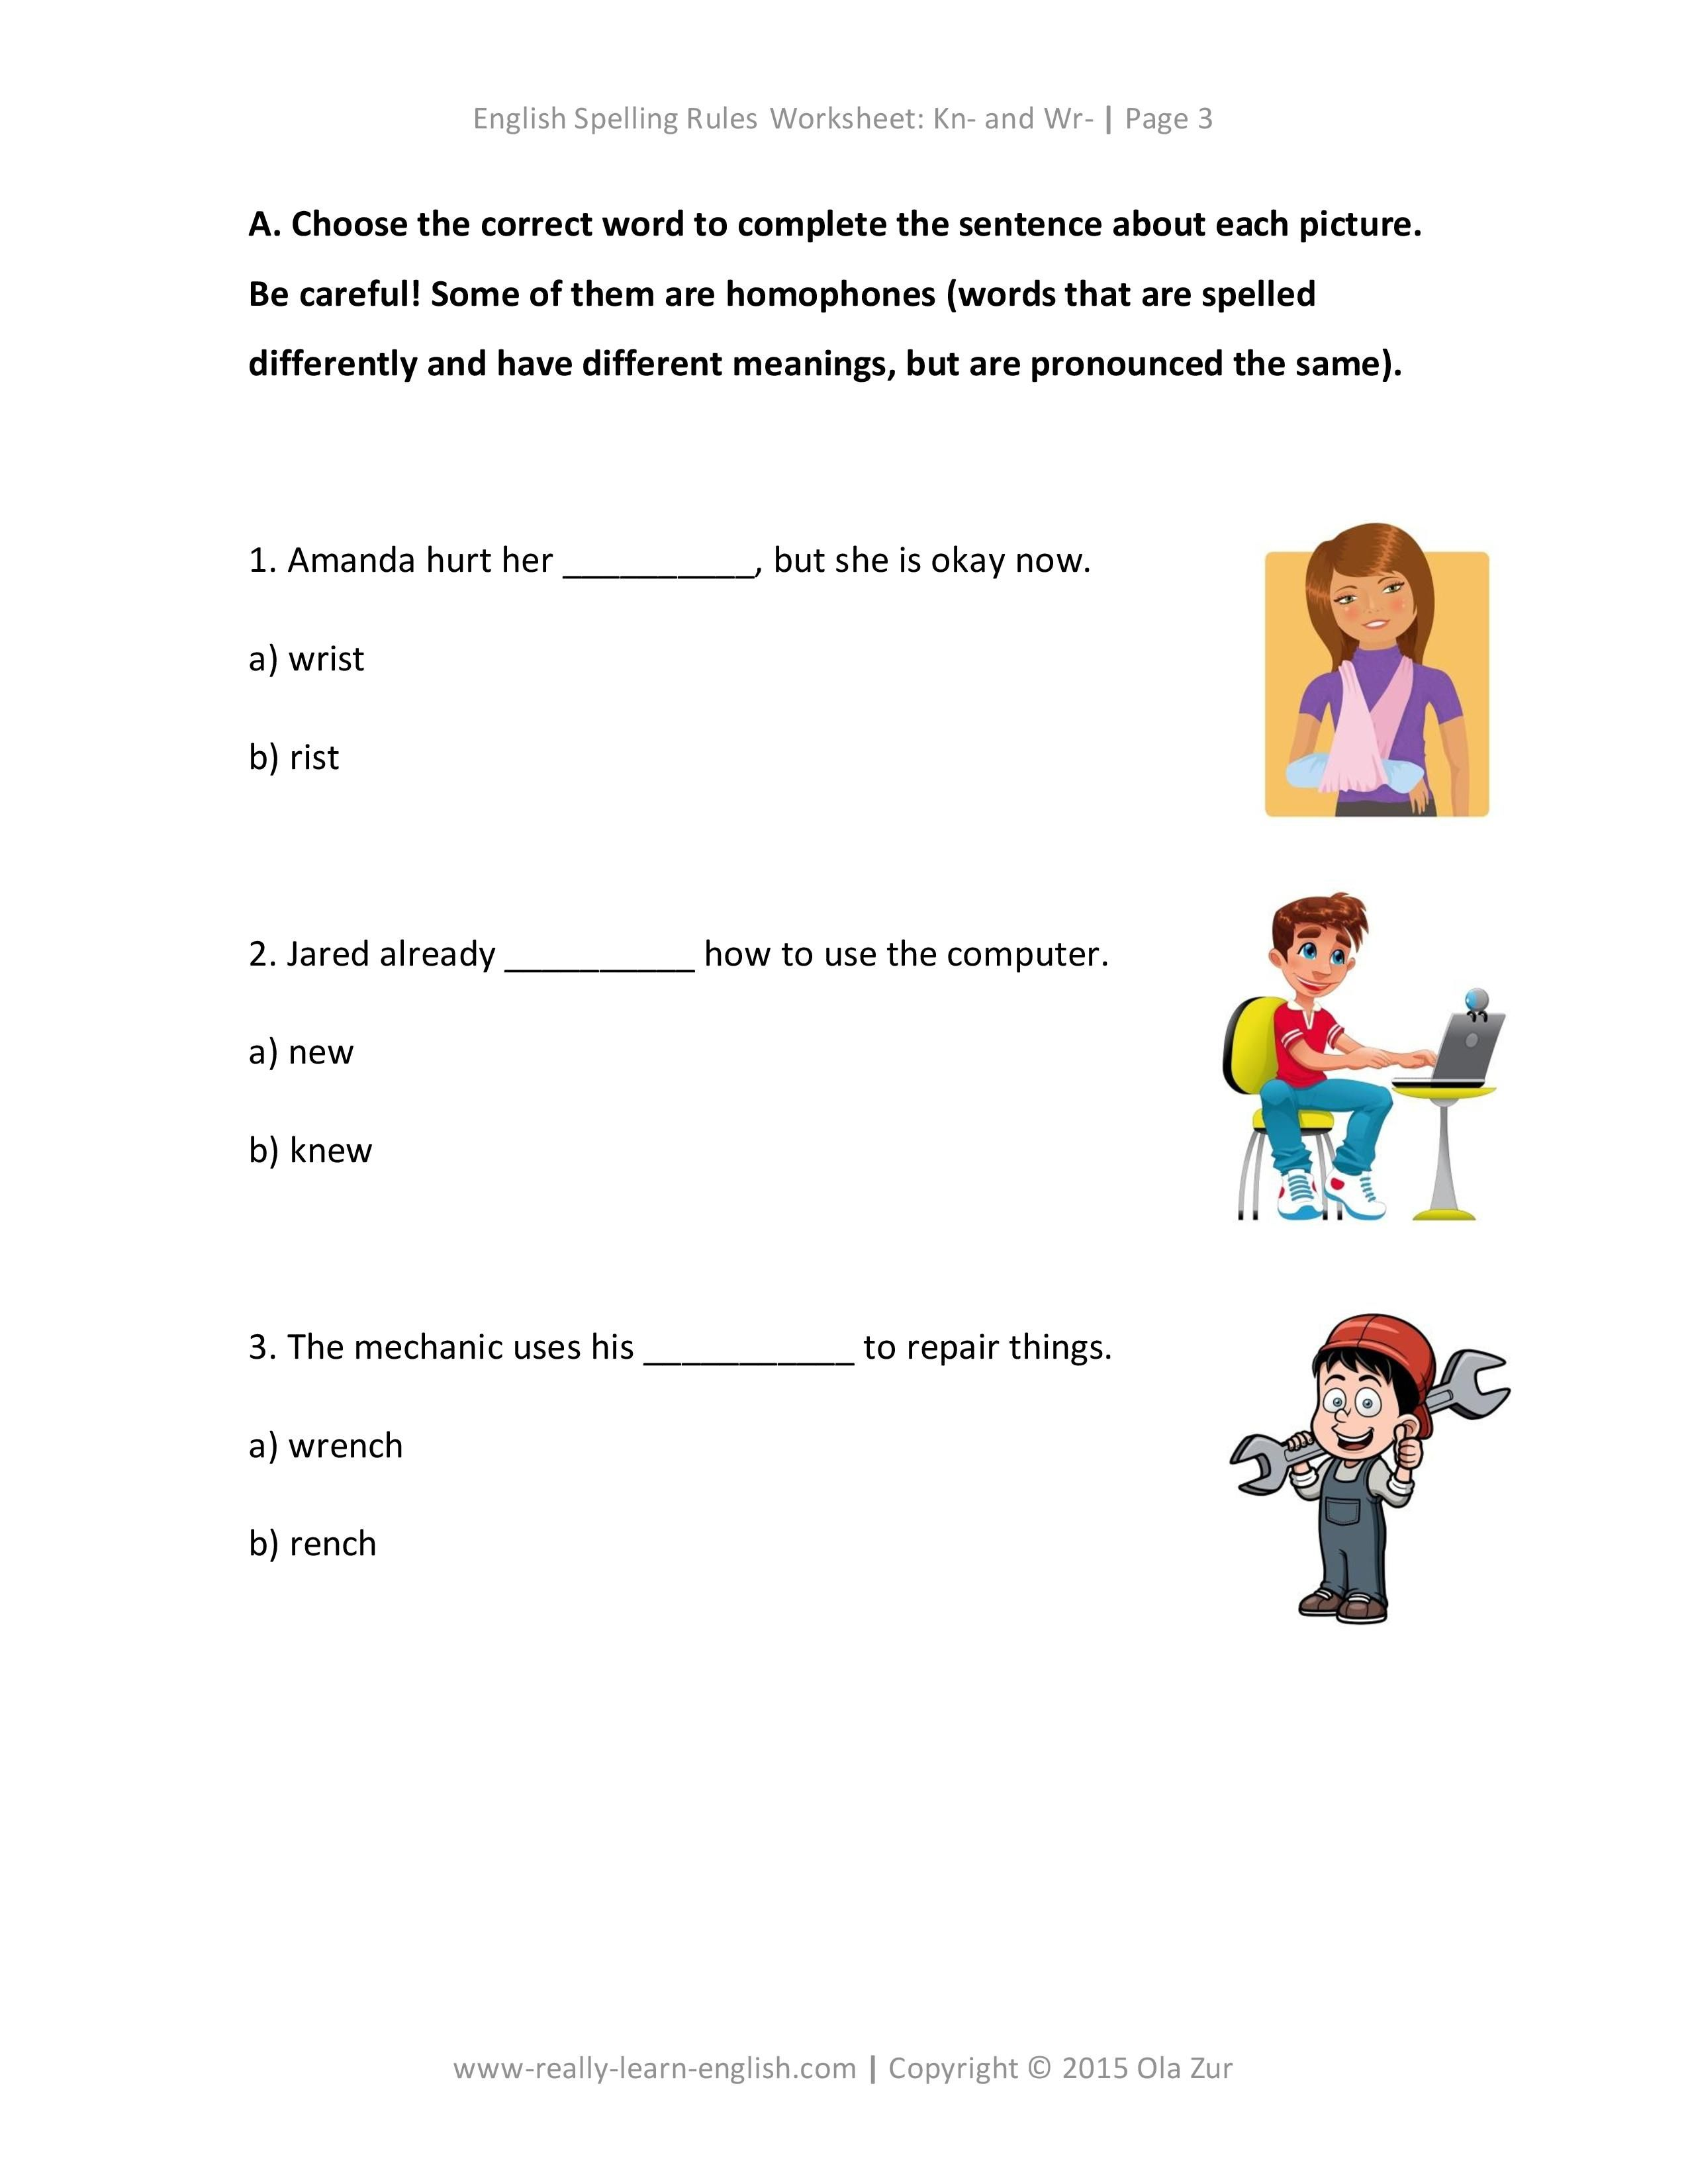 worksheet Silent W Words Worksheets the complete list of english spelling rules lesson 3 kn and wr at beginning words examples worksheet ans